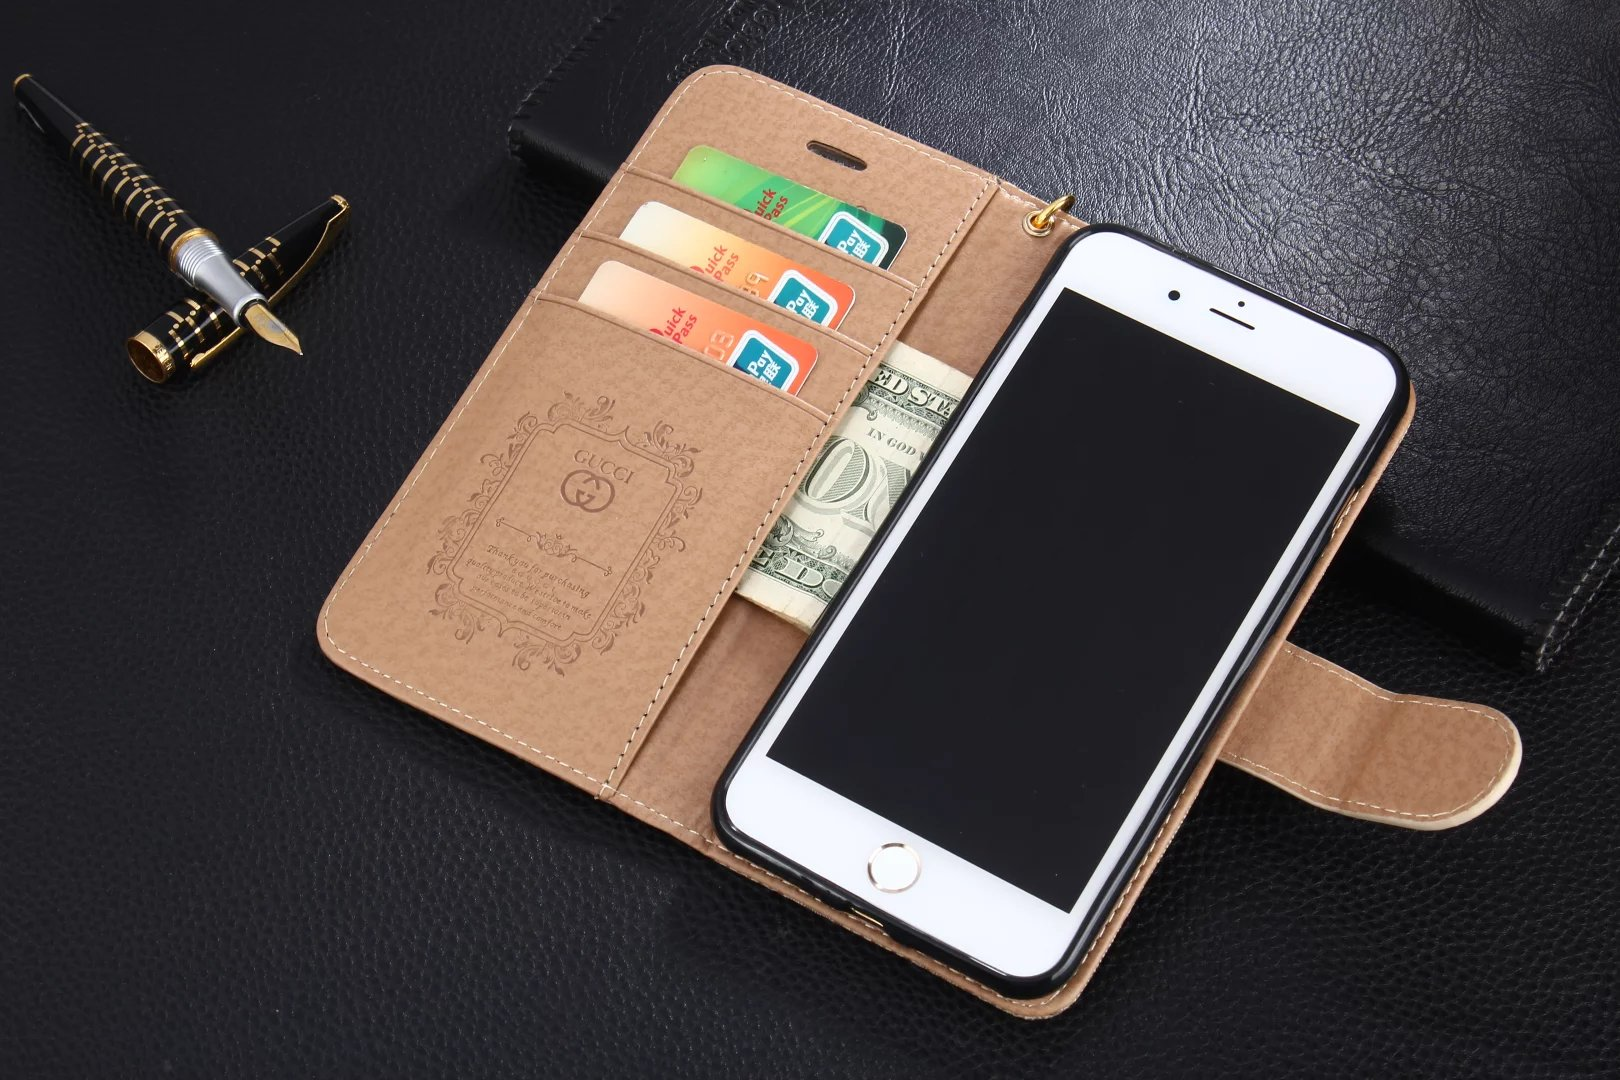 handyhüllen für iphone hülle für iphone Louis Vuitton iphone 8 Plus hüllen iphone cover mit eigenem foto ipad ca8 Plus leder handy cover 8 Plus iphone hülle 8 Plus s ca8 Plus erstellen meine eigene handyhülle